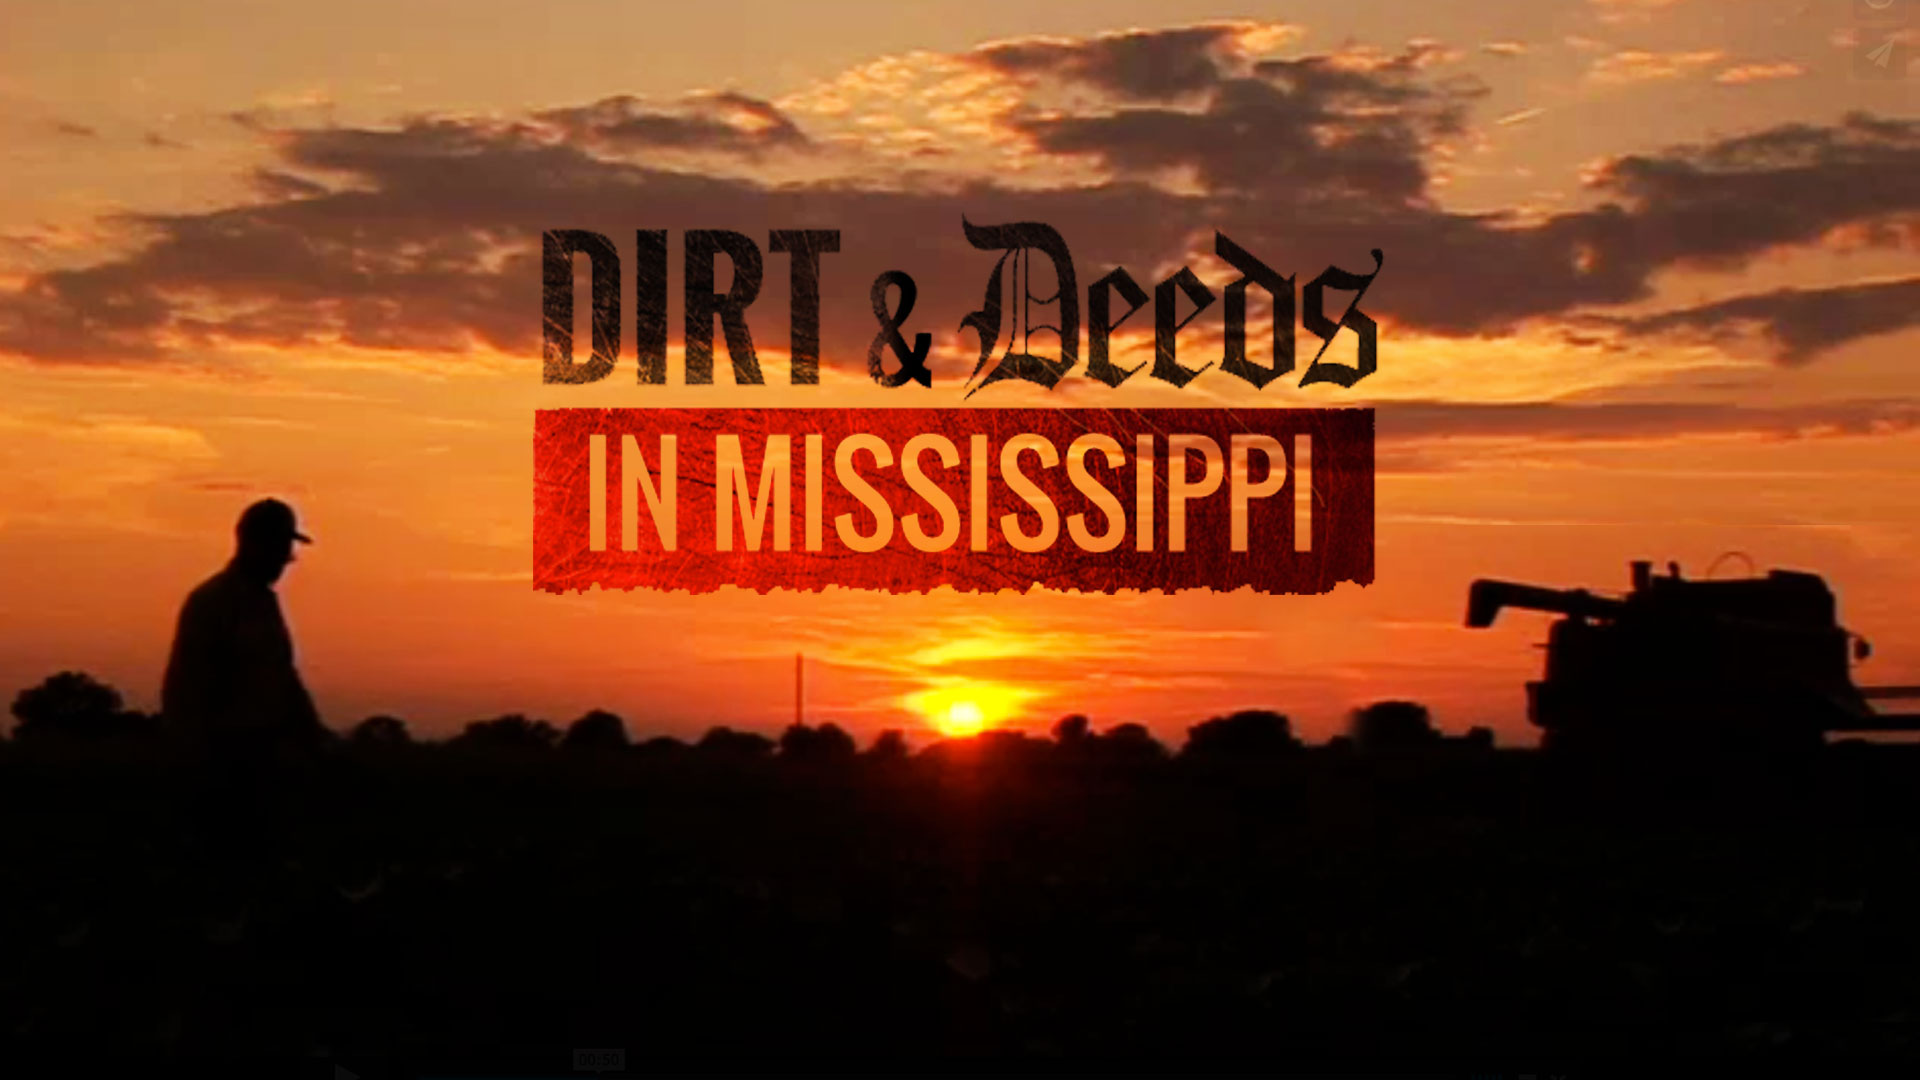 Dirt & Deeds title graphic